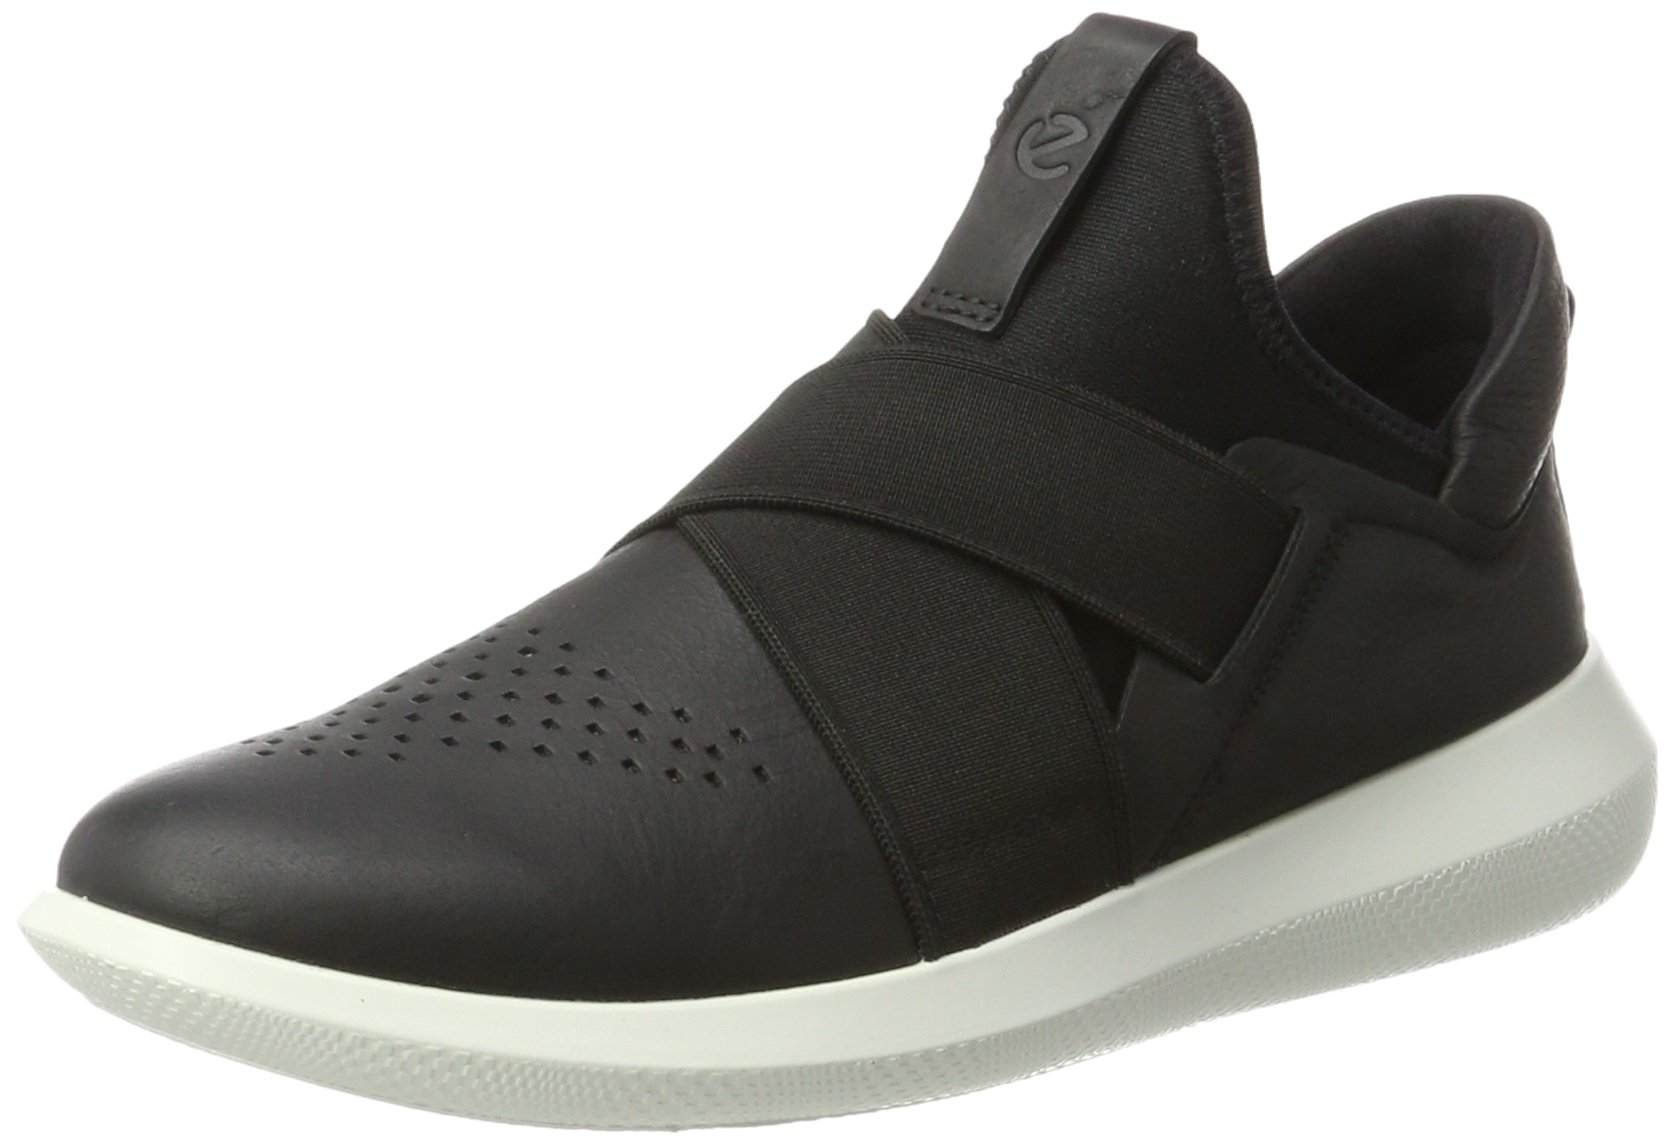 ECCO Women's Women's Scinapse Band Fashion Sneaker, Black/Black, 41 EU/10-10.5 M US